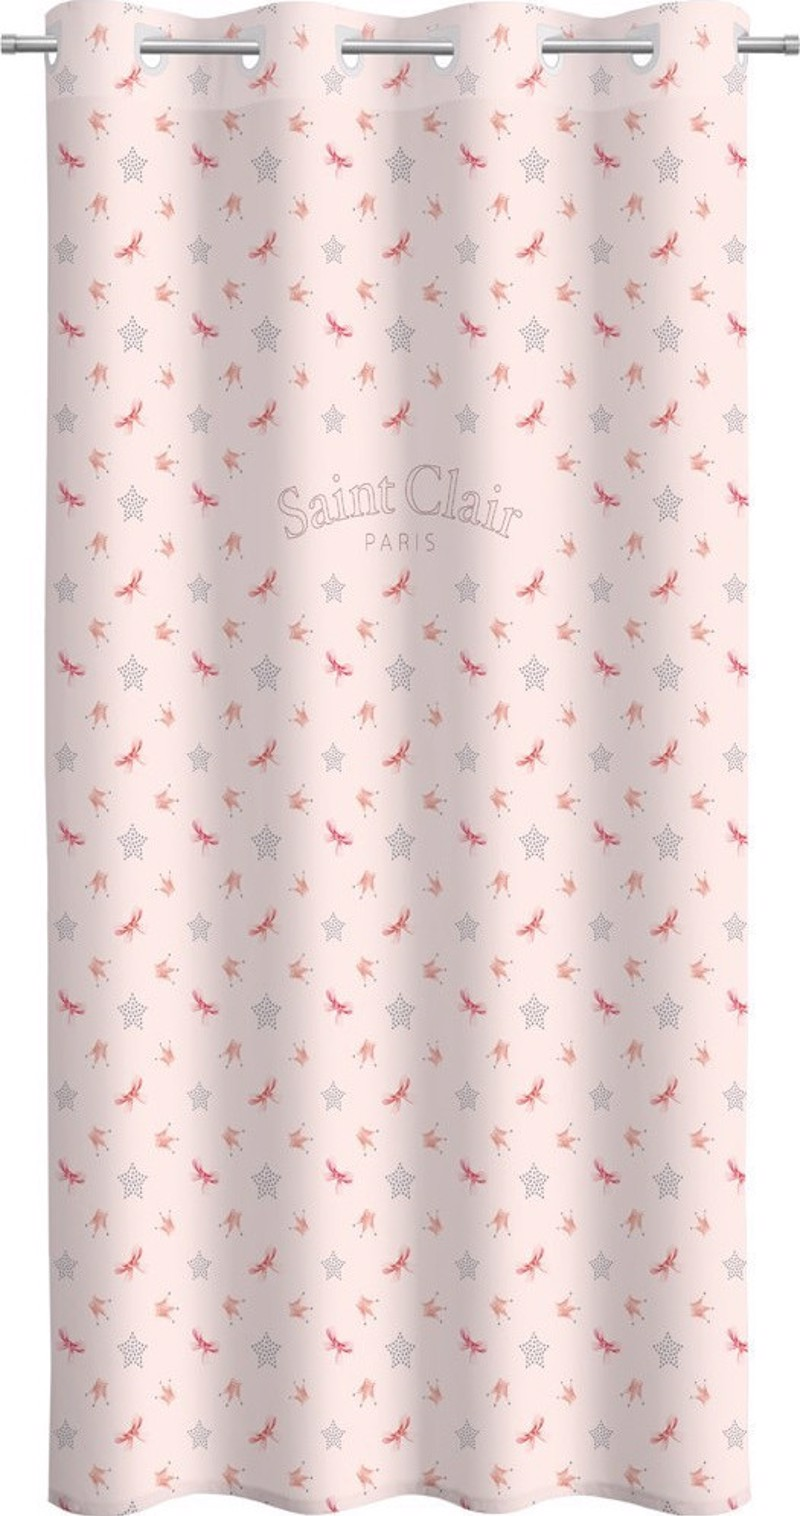 Saint Clair Κουρτίνα Soft Touch Rosie Pinky V2 160×240